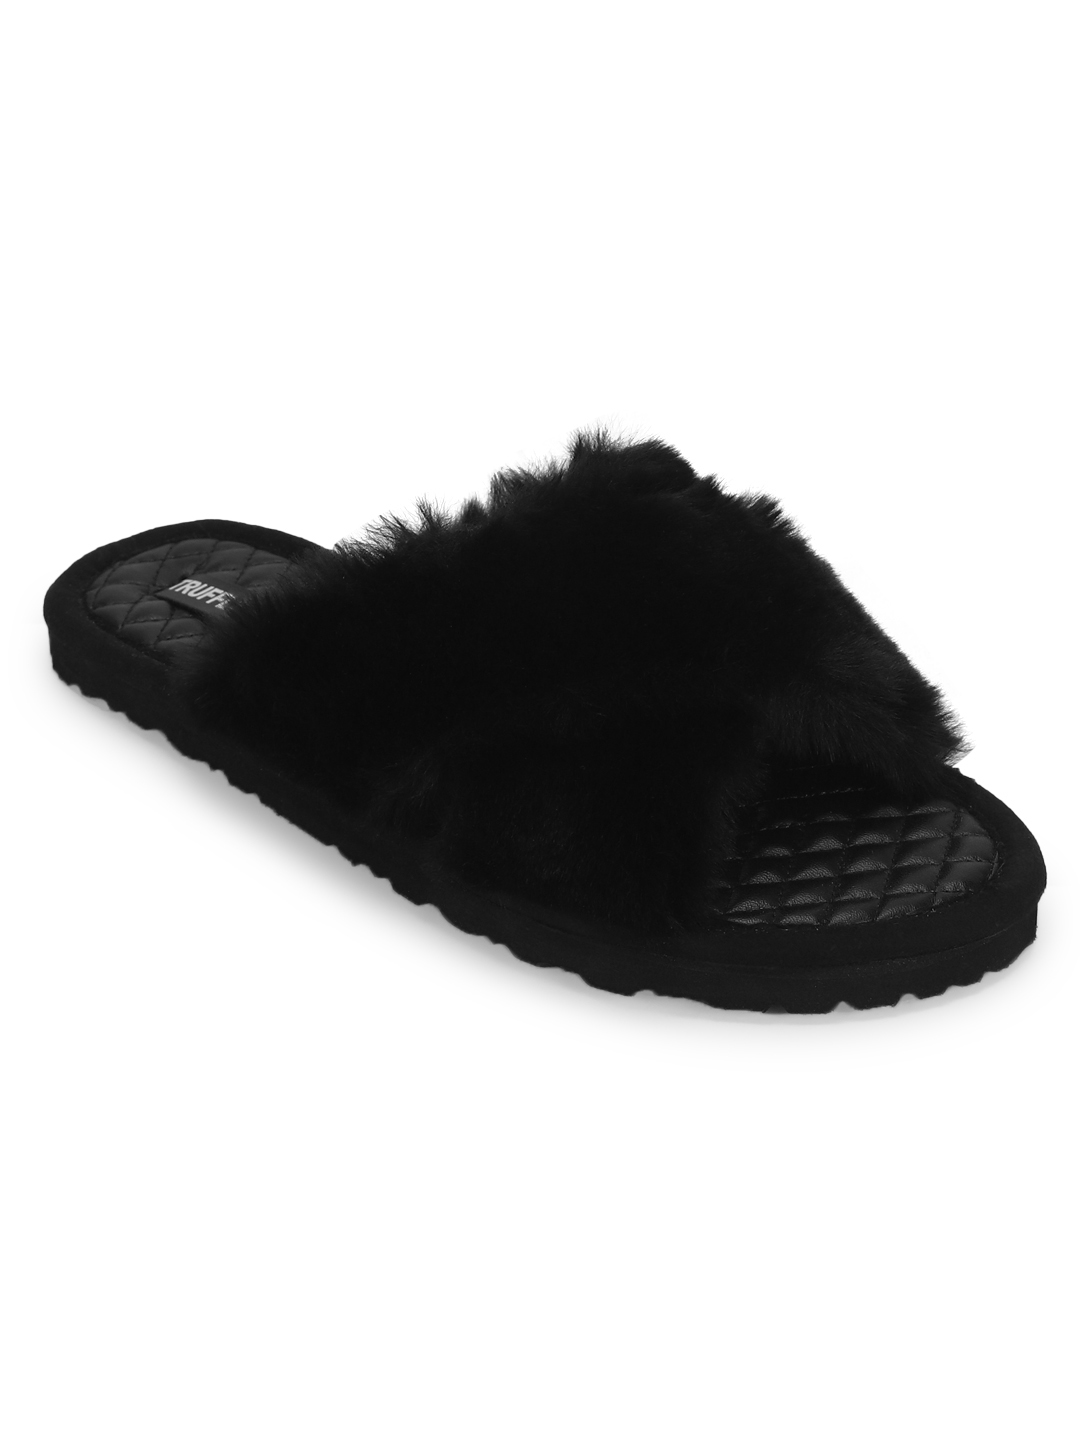 Truffle Collection | Black Fuzzy Fur Slippers